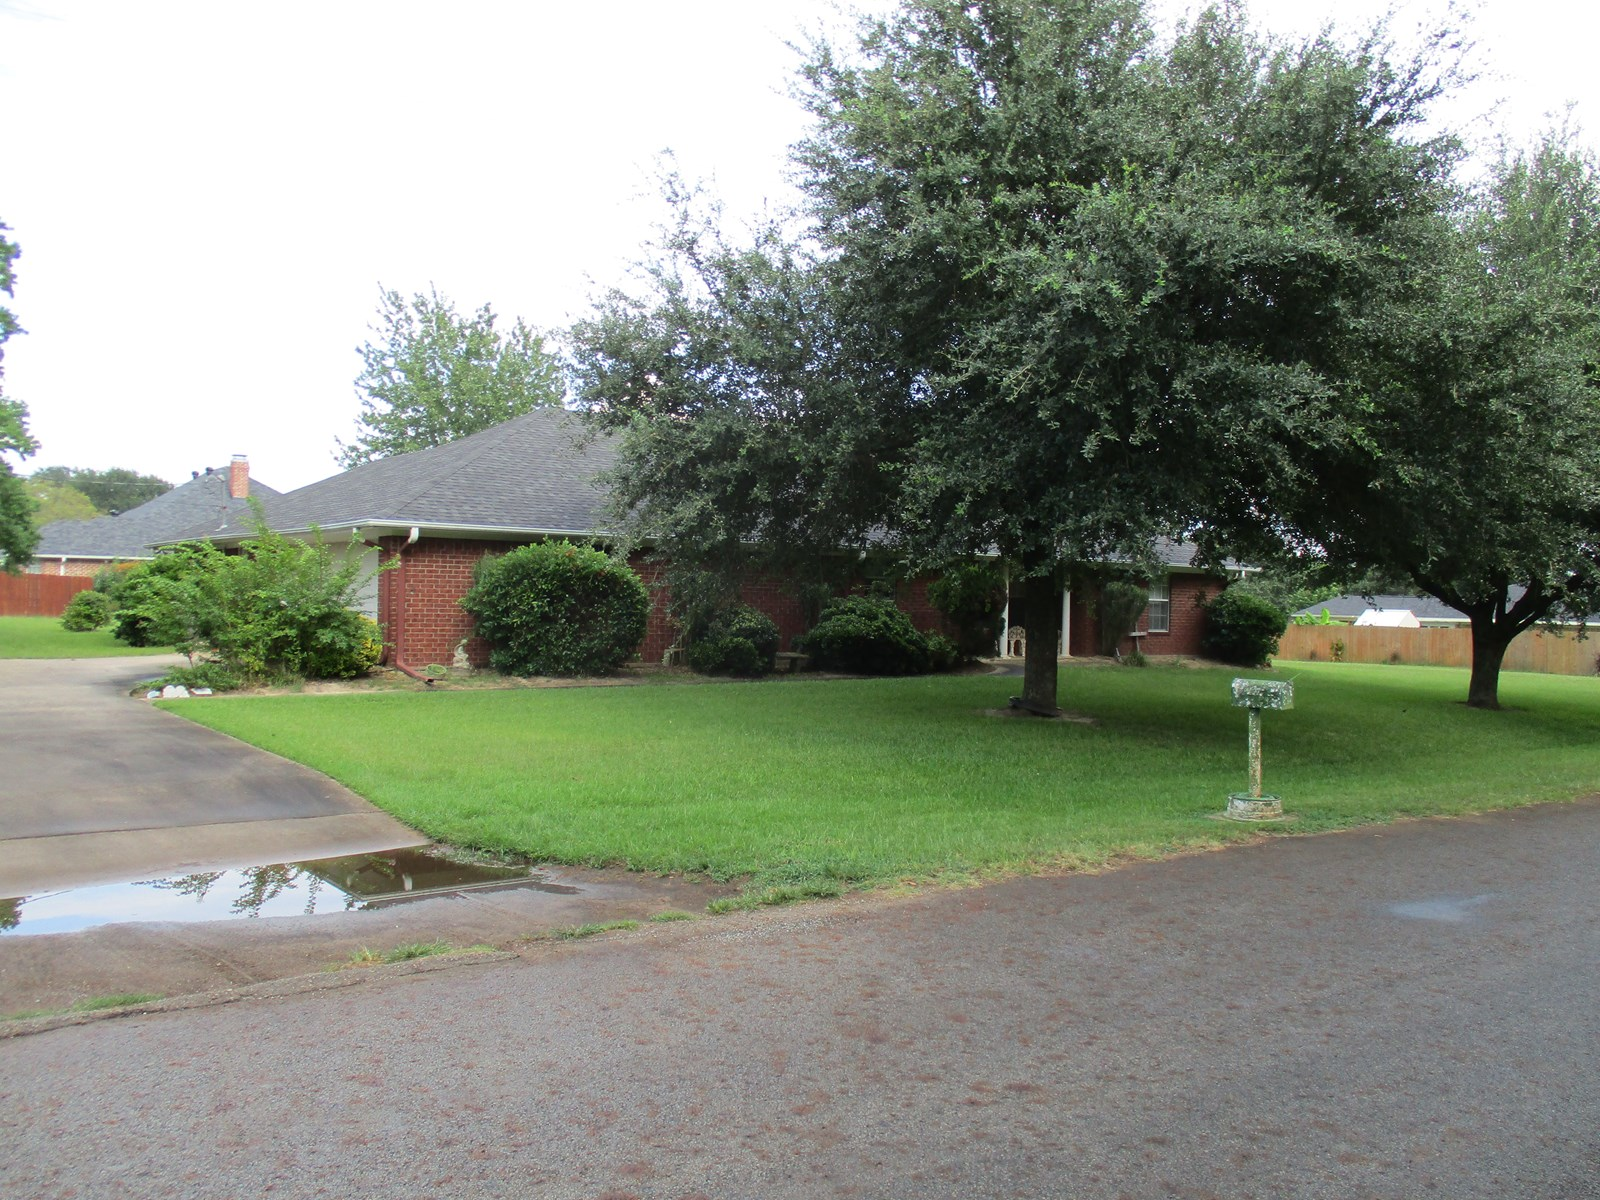 Home for sale, Rusk, Texas